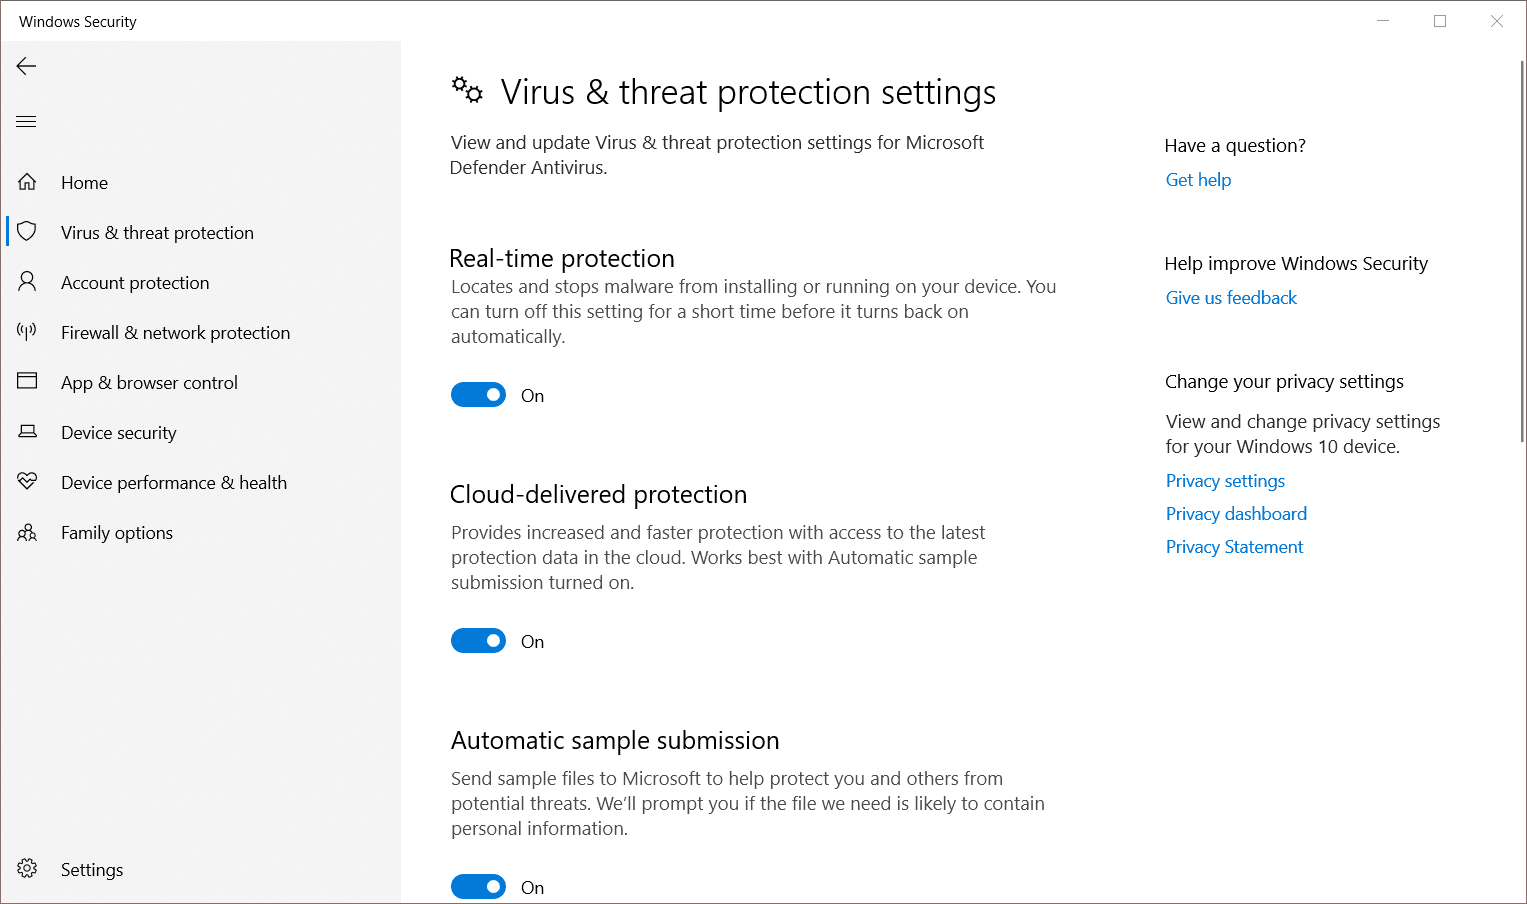 http://server.digimetriq.com/wp-content/uploads/2020/12/1608653295_657_10-Robust-features-of-Microsoft-Defender-for-Extra-Protection-of.png